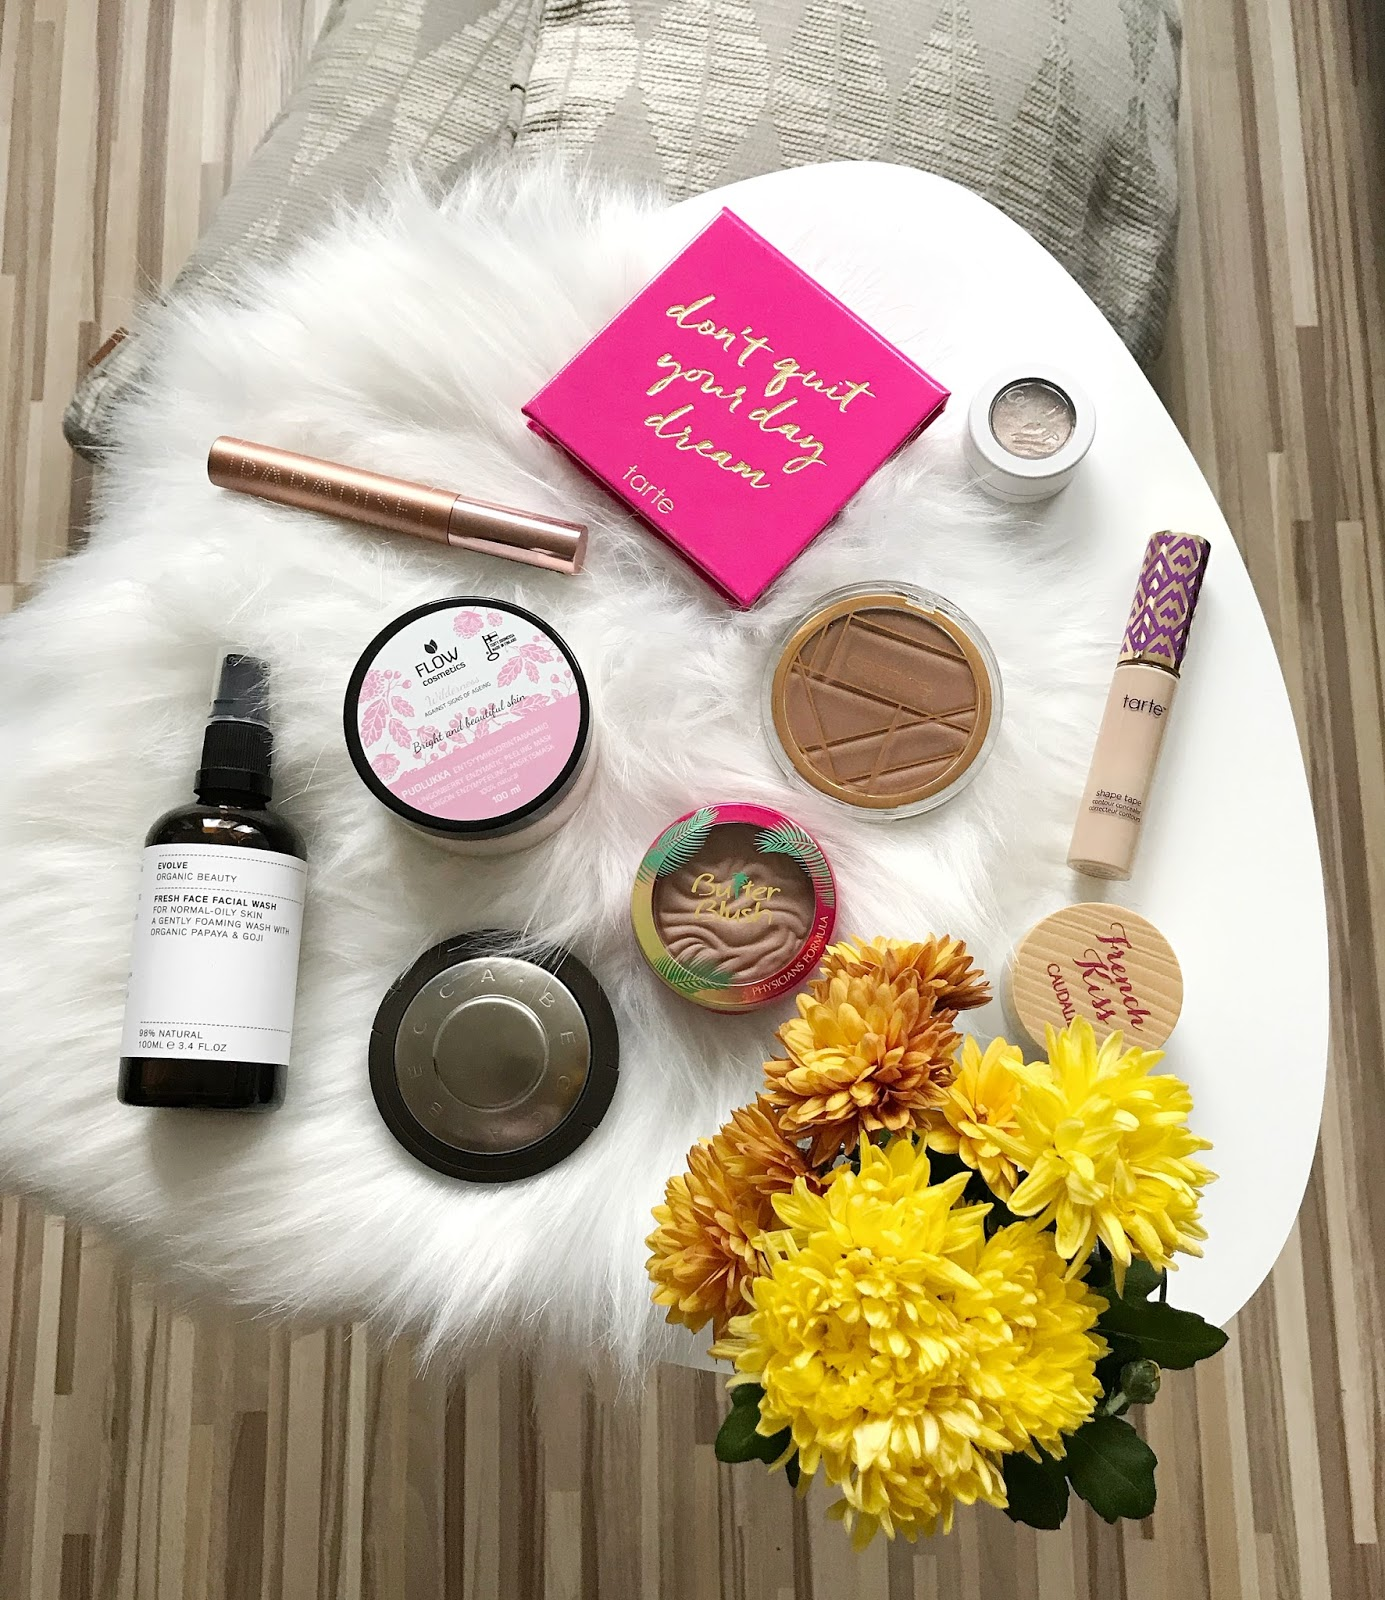 Physician's Formula Butter Blush, Catrice, Becca Champagne Pop, Tarte Don't Quit Your Day Dream, Tarte Shape Tape, L'Oreal Paradise Extatic, Colourpop Super Shock Shadow I Heart This, Evolve Organic Beauty Face Facial Wash, Caudalie French Kiss, Flow Kosmetiikka